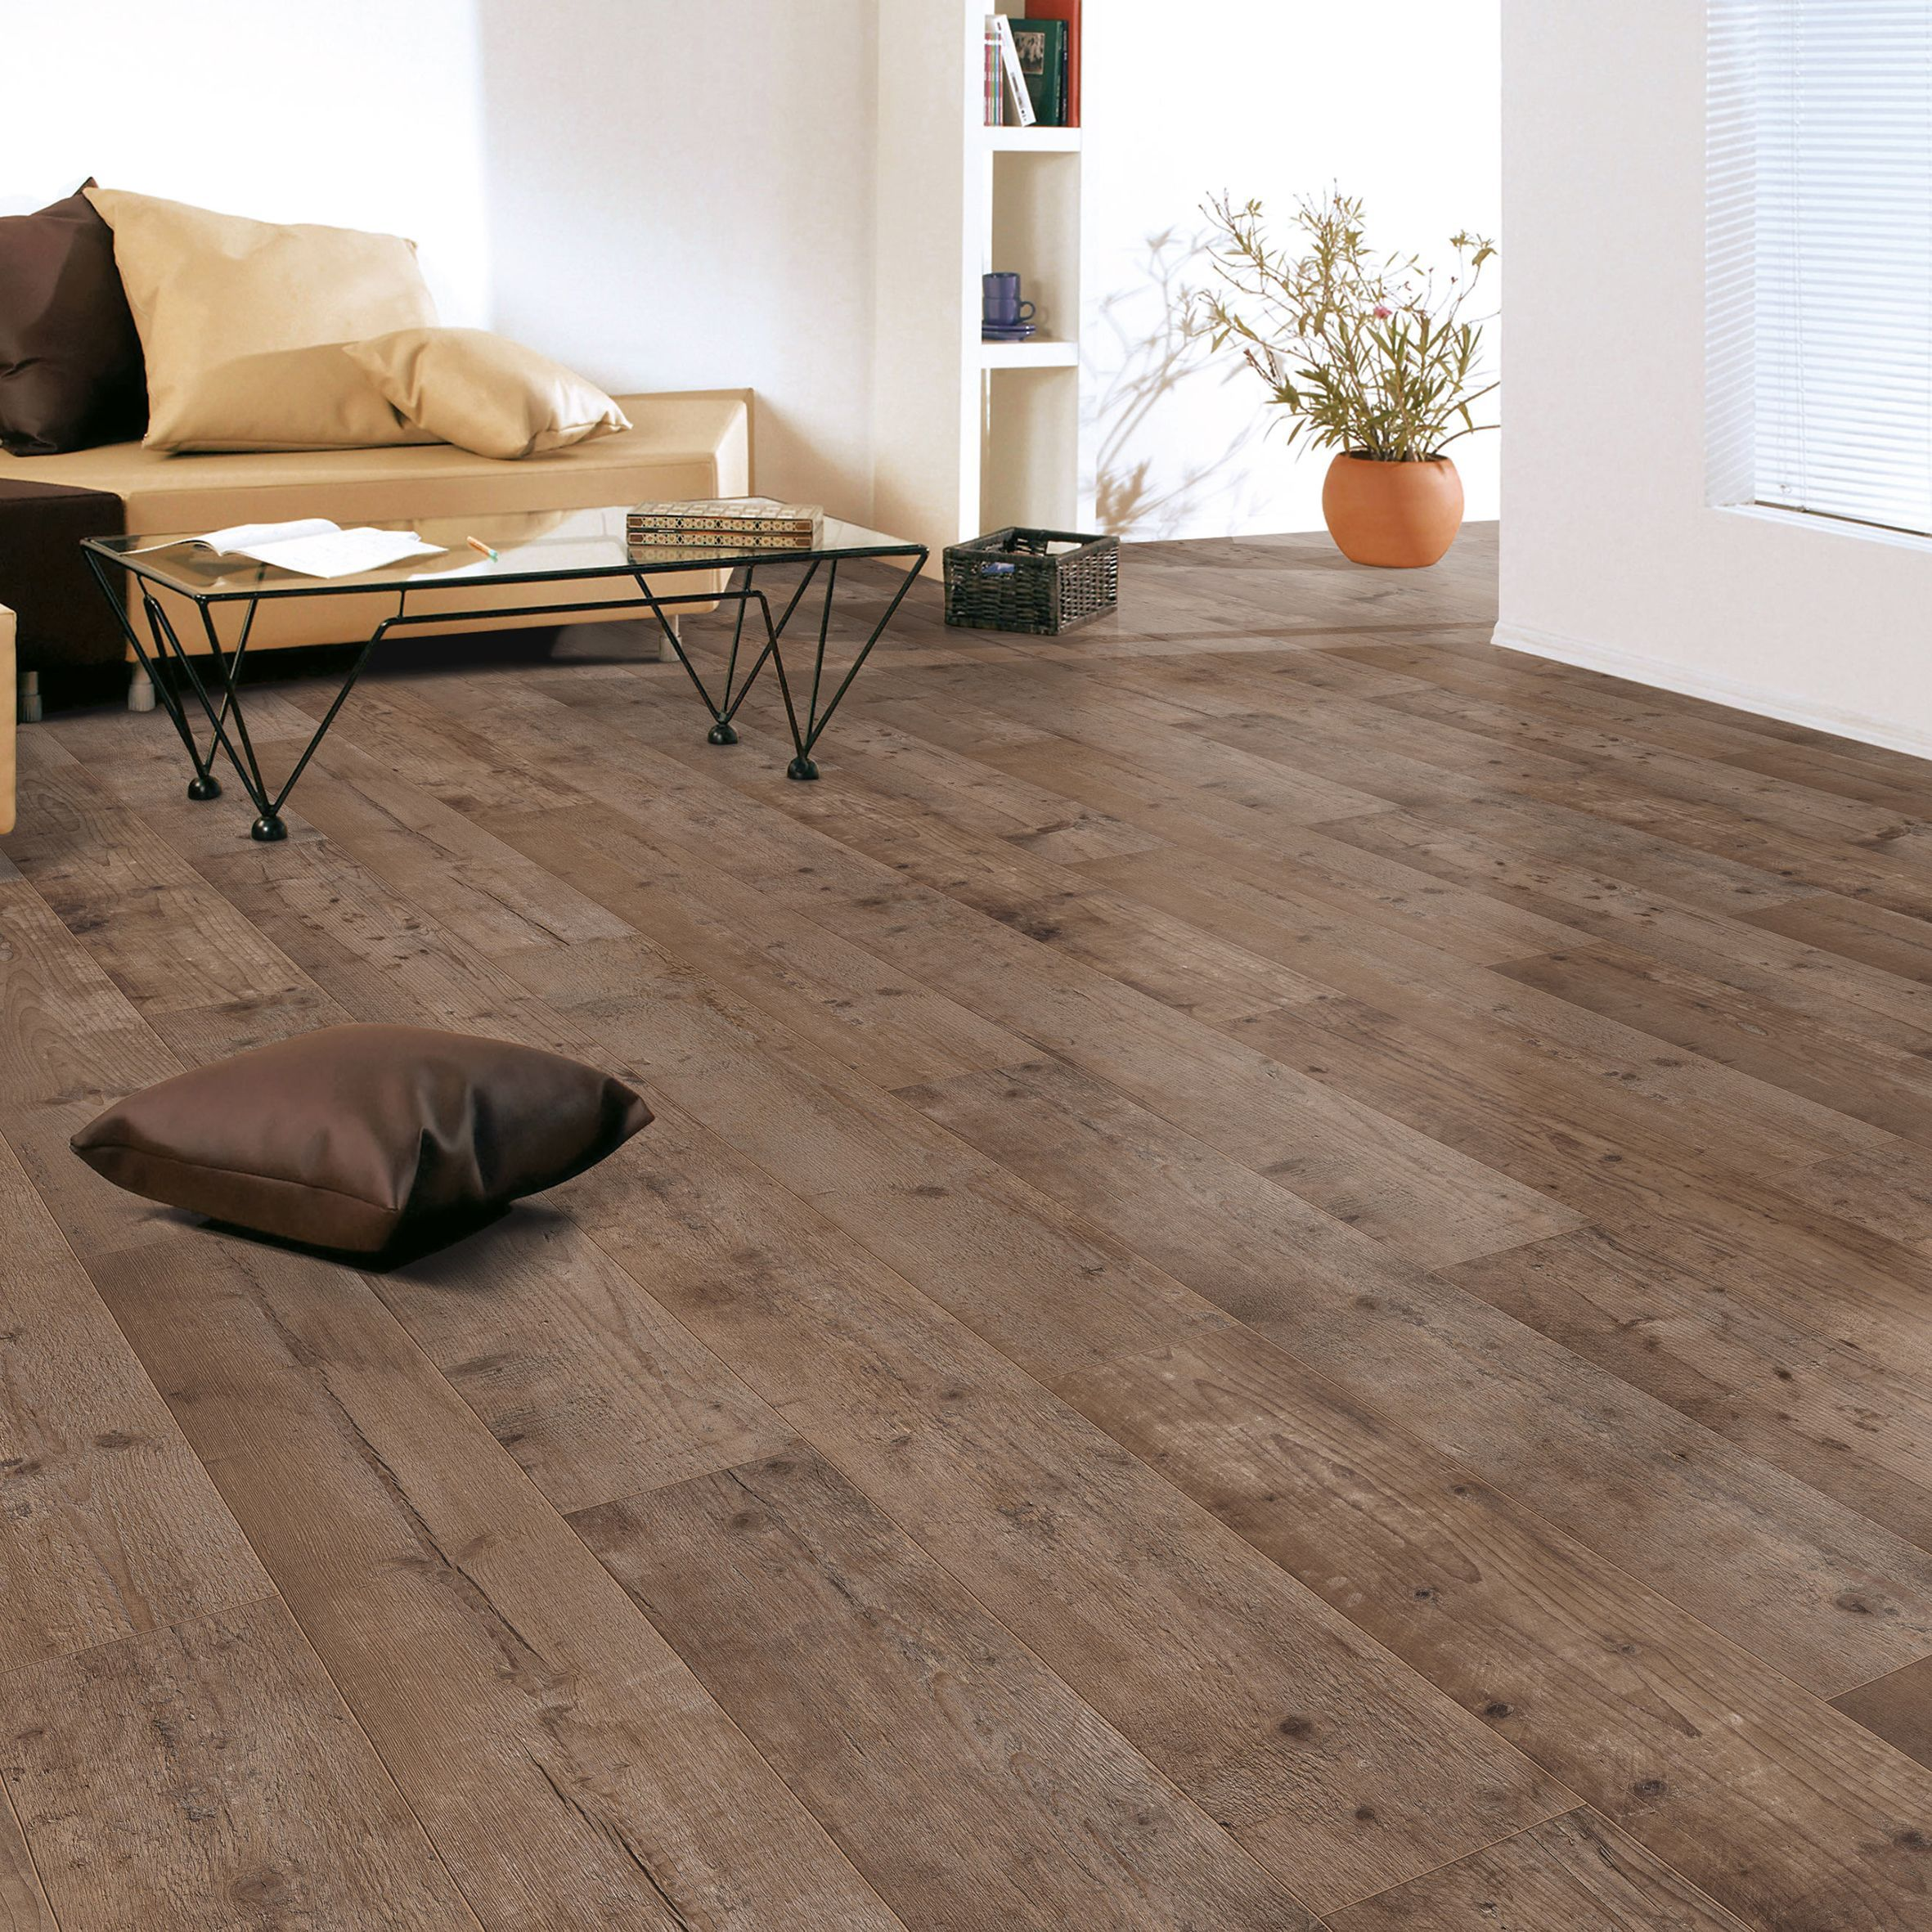 Colours Sicily Rustic Dark Oak Effect Laminate Flooring 199 M